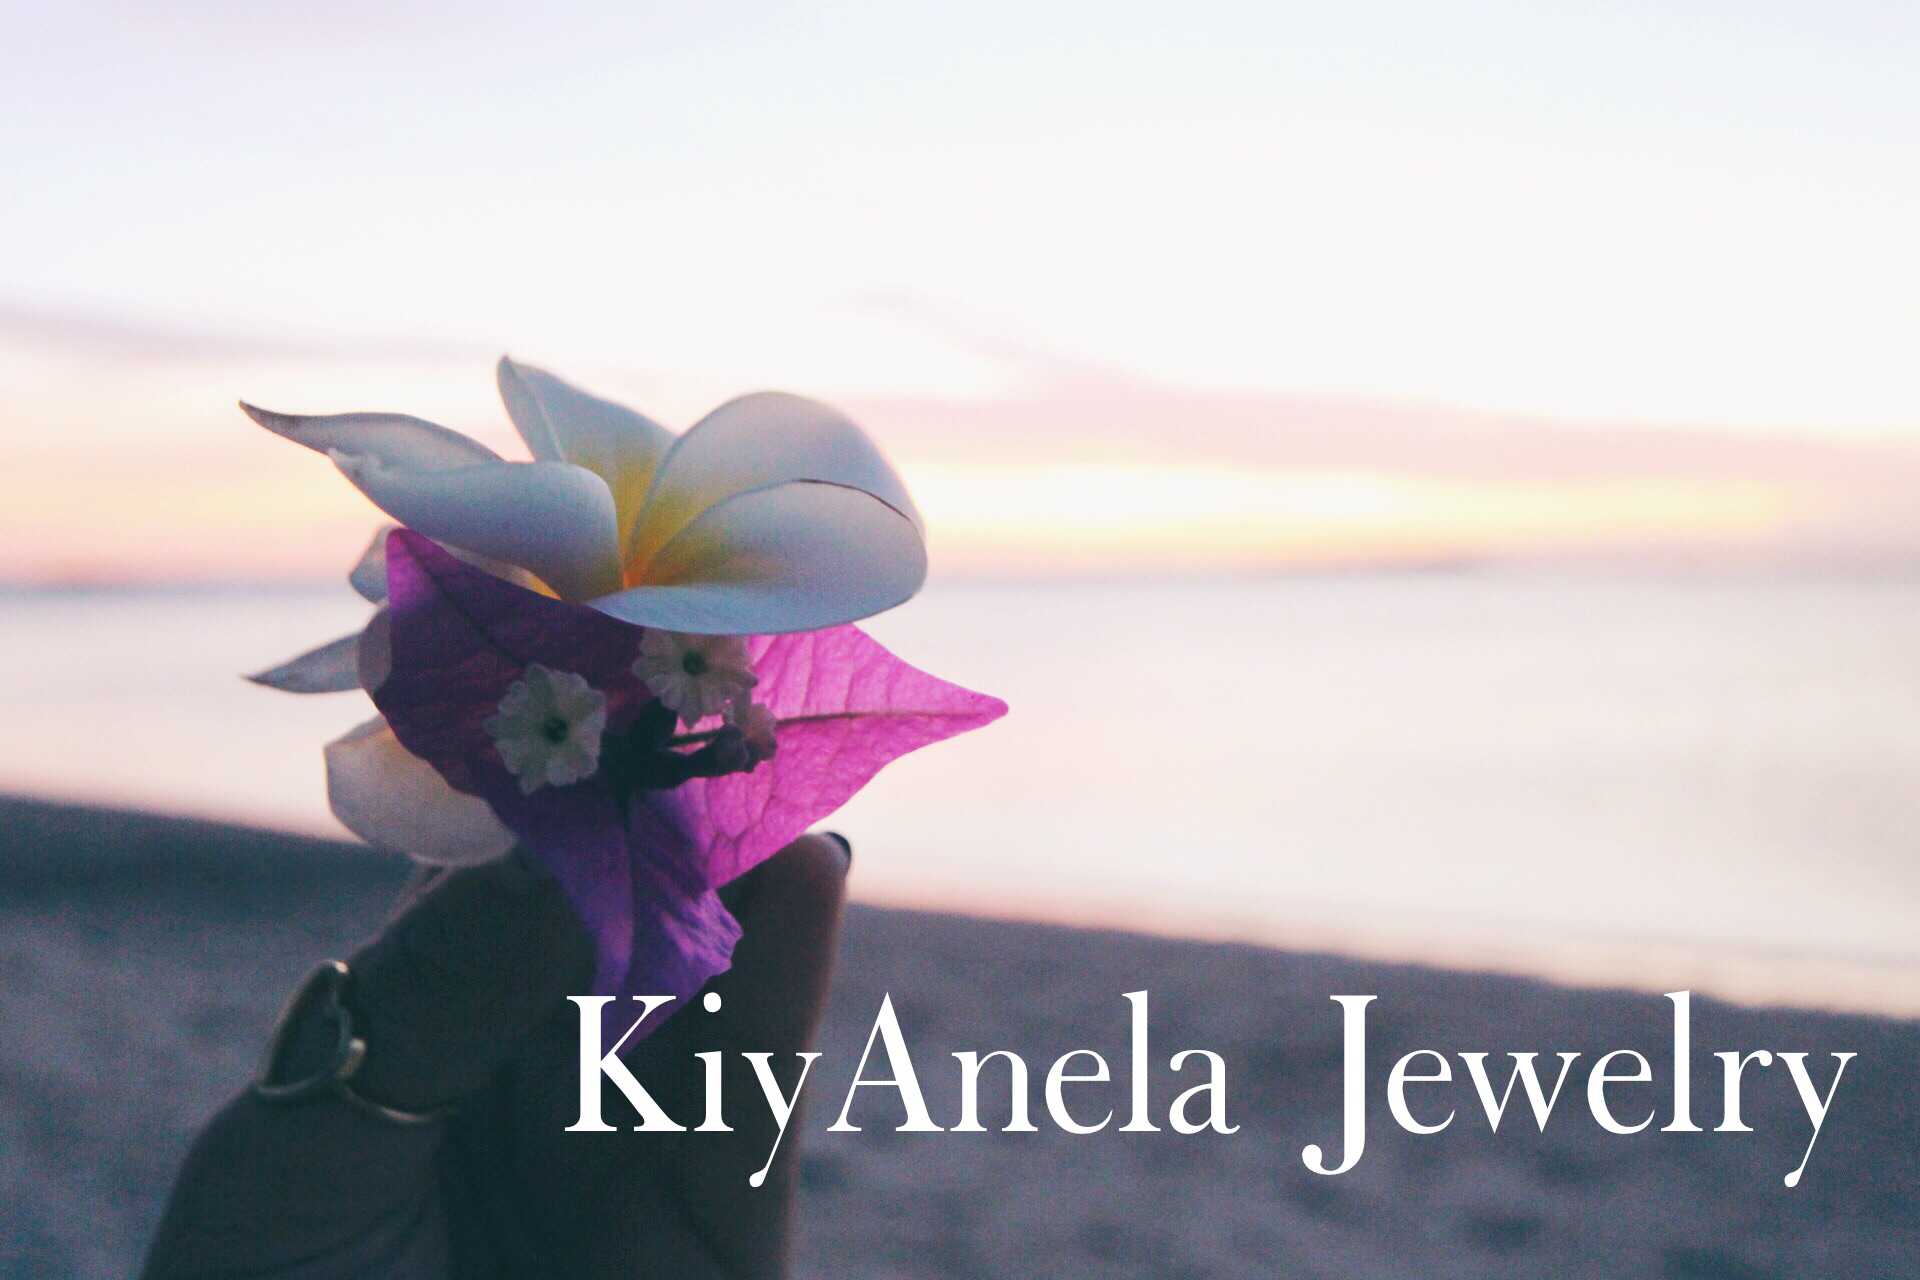 KiyAnela Jewelry.